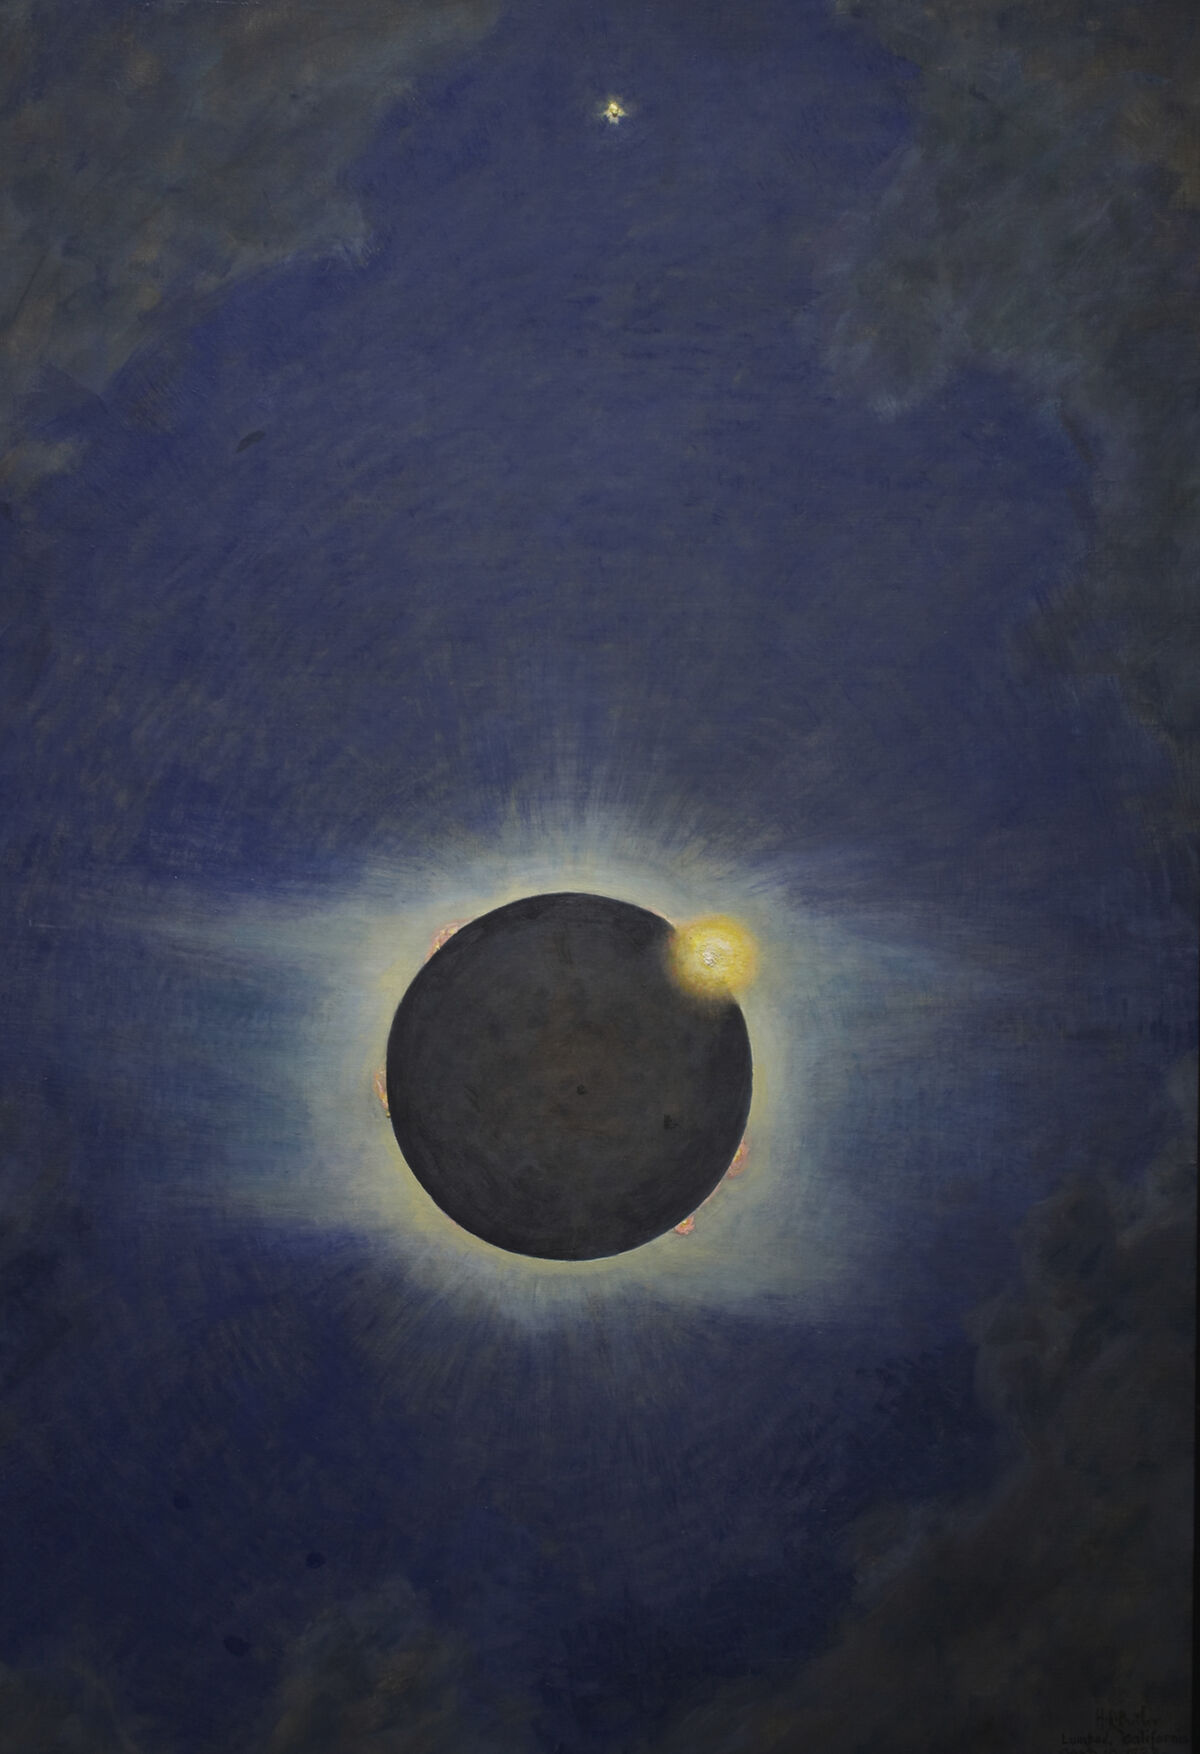 Howard Russell Butler, Solar Eclipse, Lompoc 1923, 1923. Courtesy of Princeton University, gift of H. Russell Butler Jr..